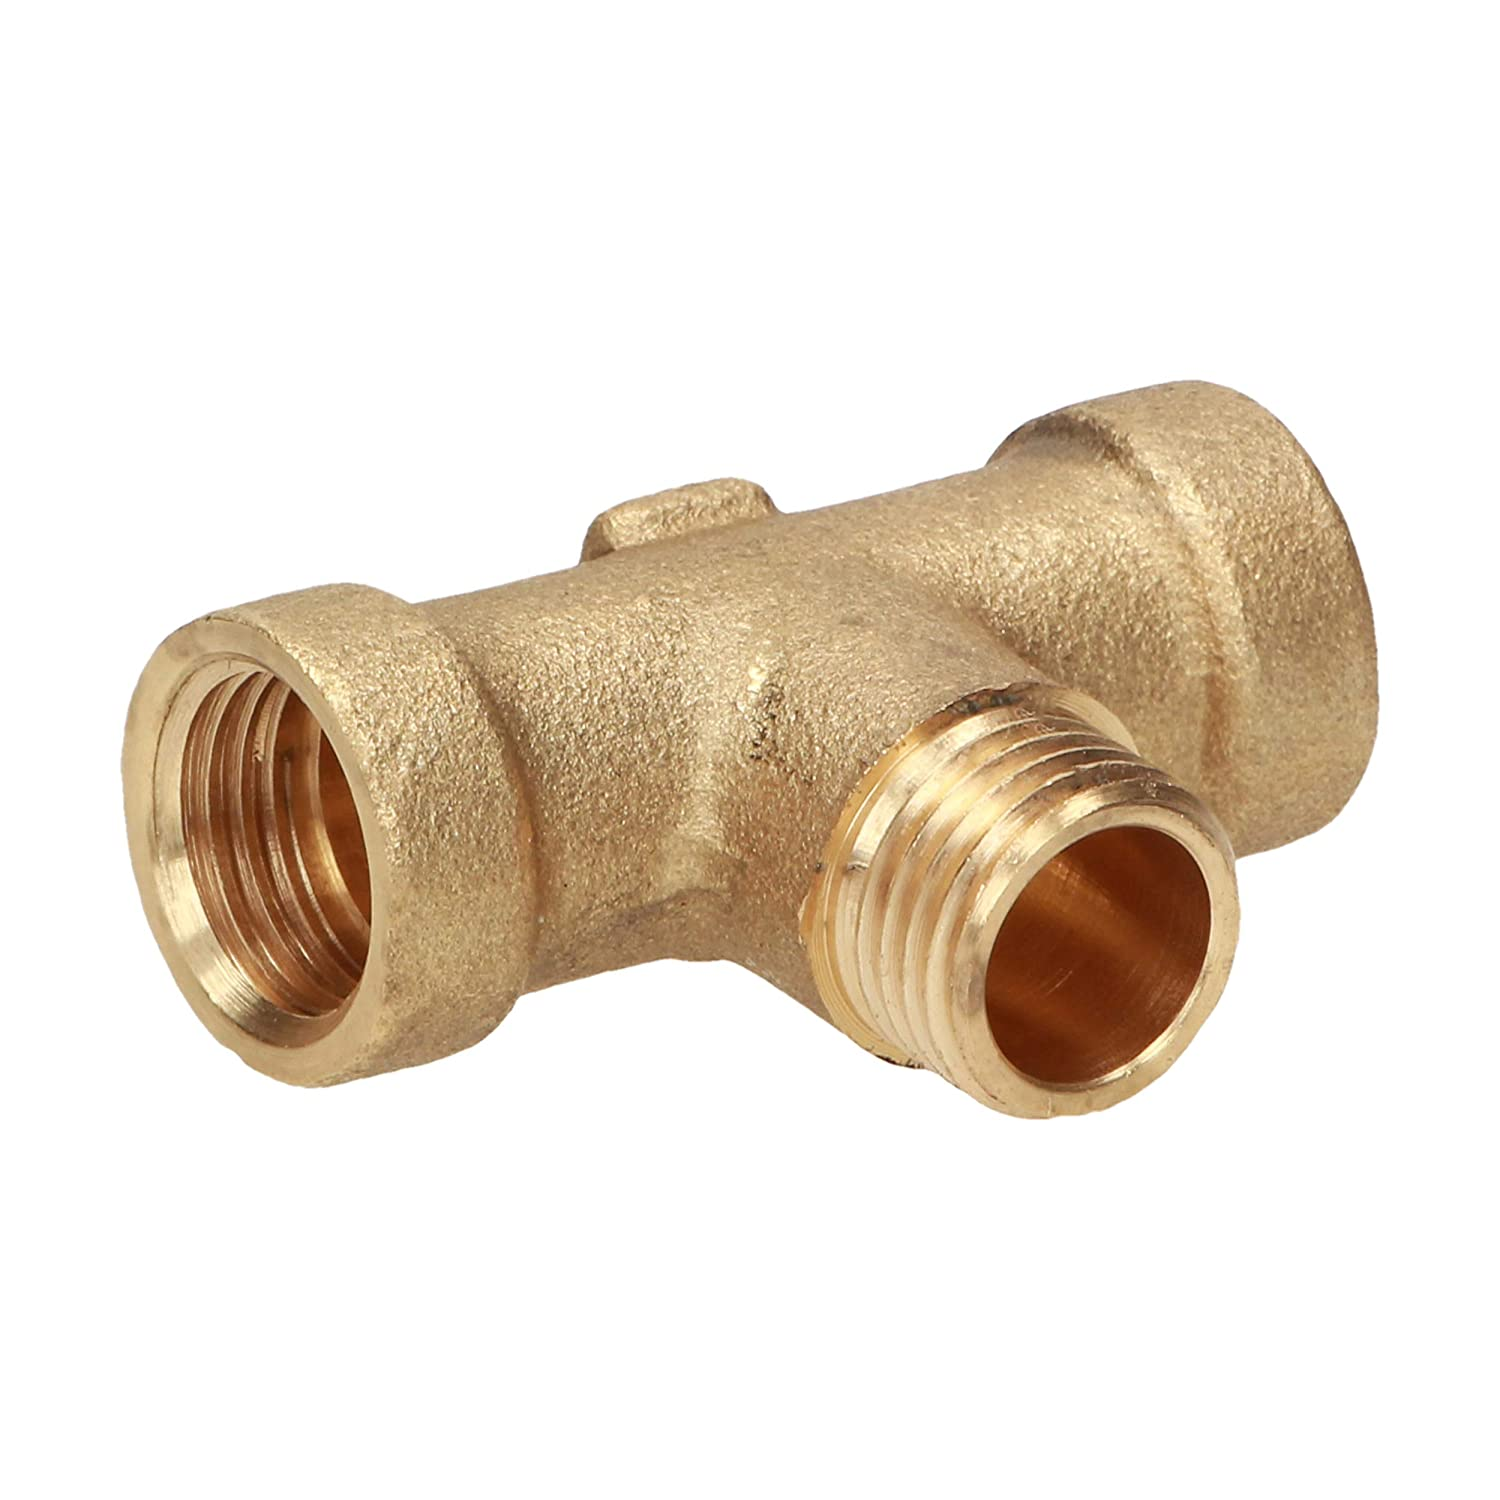 Brass T-piece in various designs and sizes ideal for industry 1 trade and household 1//4